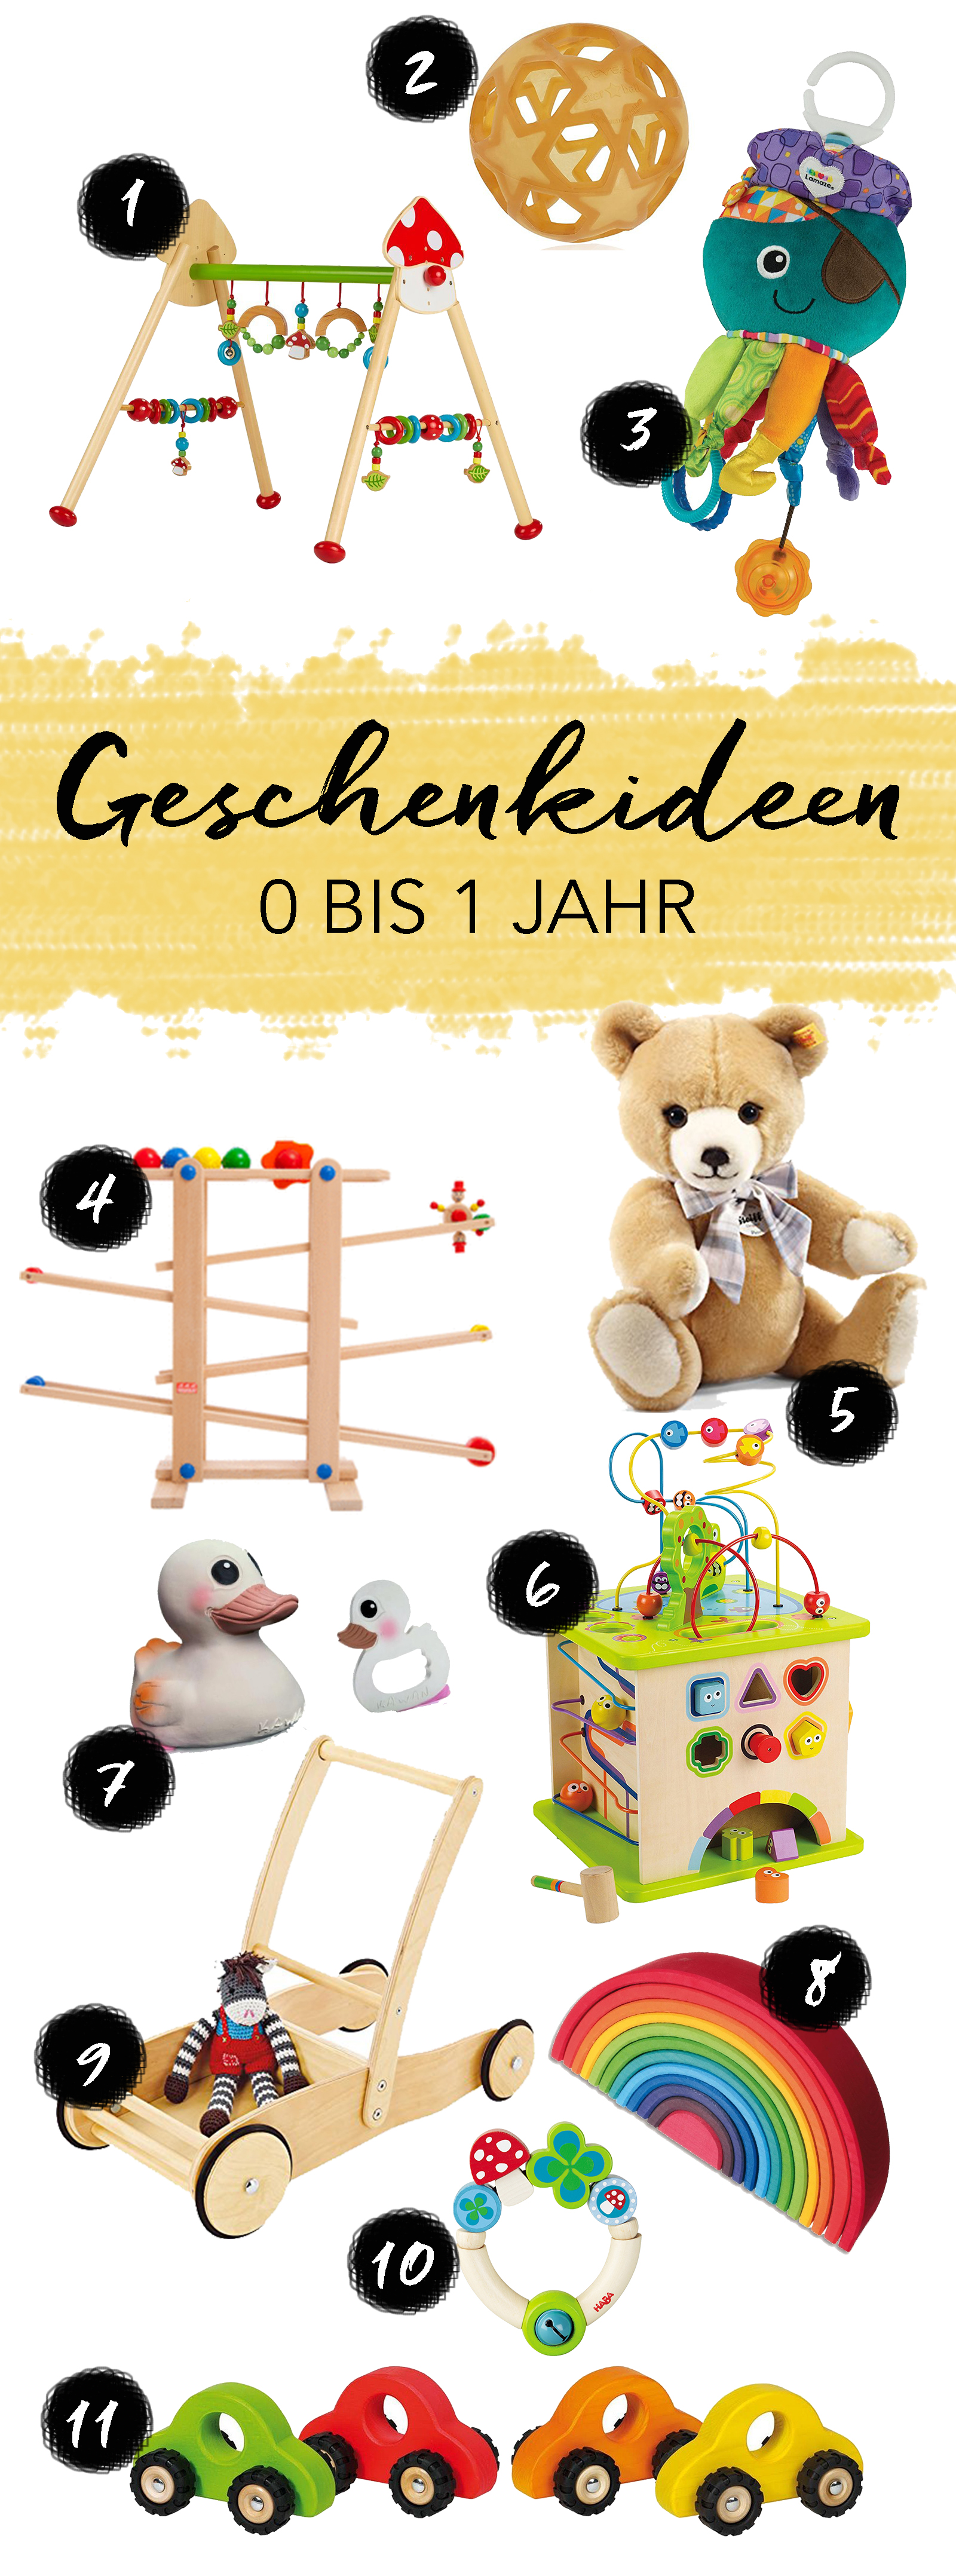 geschenkideen was schenken ideen weihnachten ostern geburtstag geschenke baby kind 0 bis 1 jahr. Black Bedroom Furniture Sets. Home Design Ideas